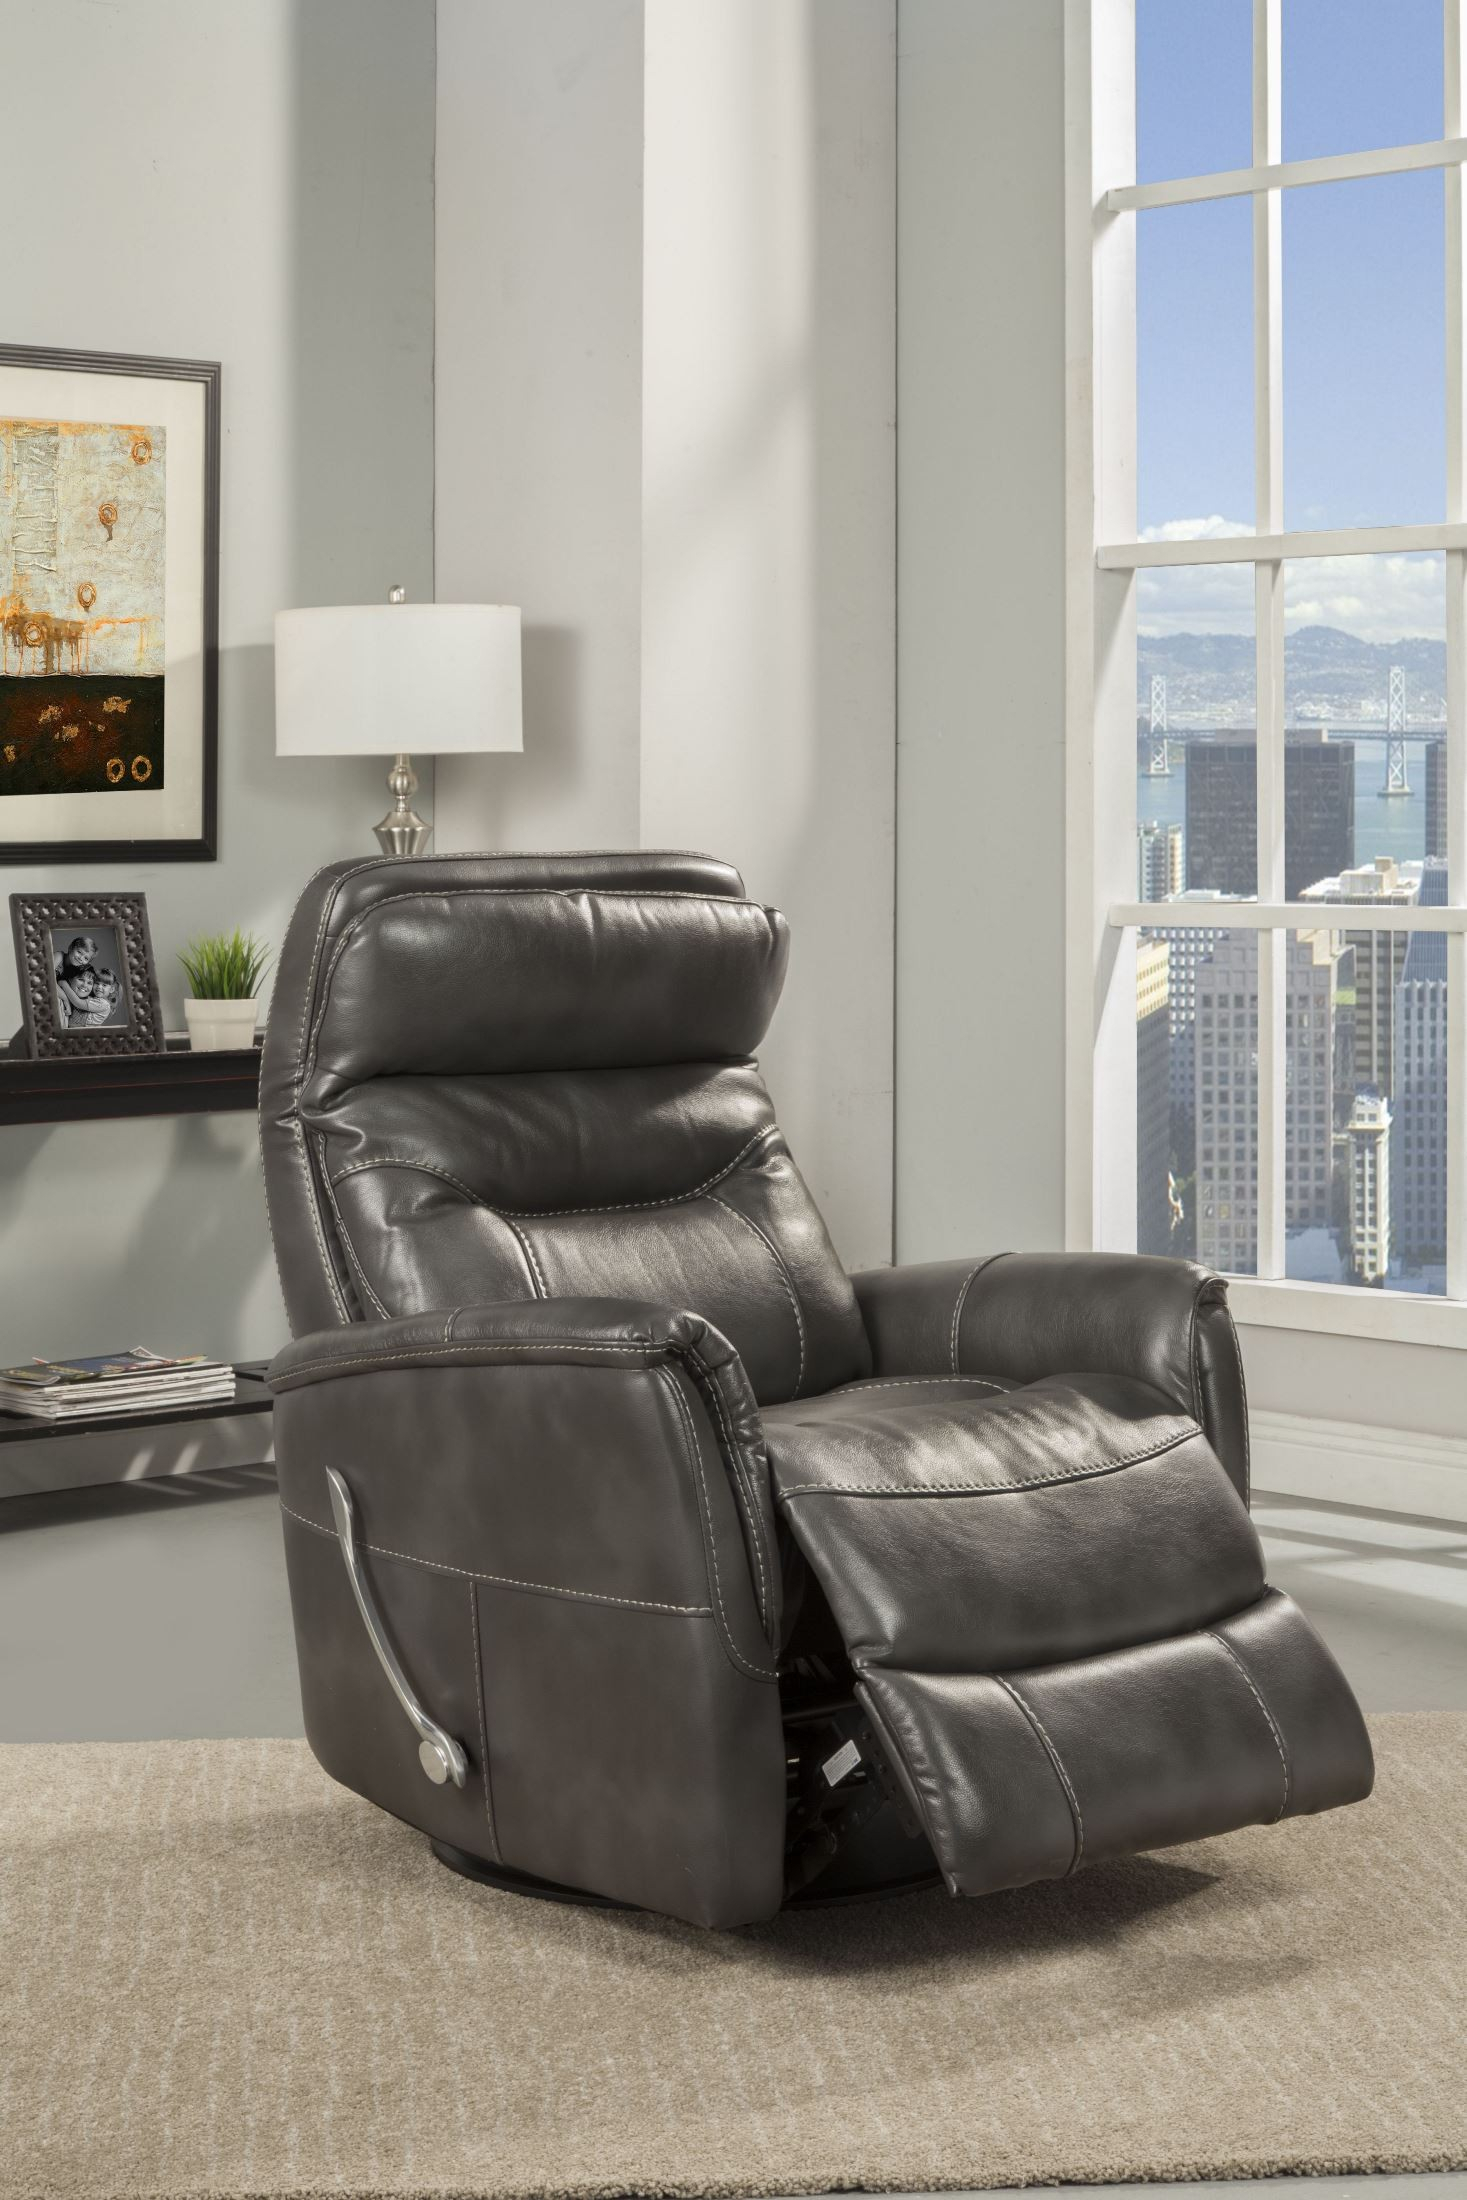 Gemini Flint Swivel Glider Recliner From Parker Living | Coleman Pertaining To Hercules Oyster Swivel Glider Recliners (View 20 of 25)